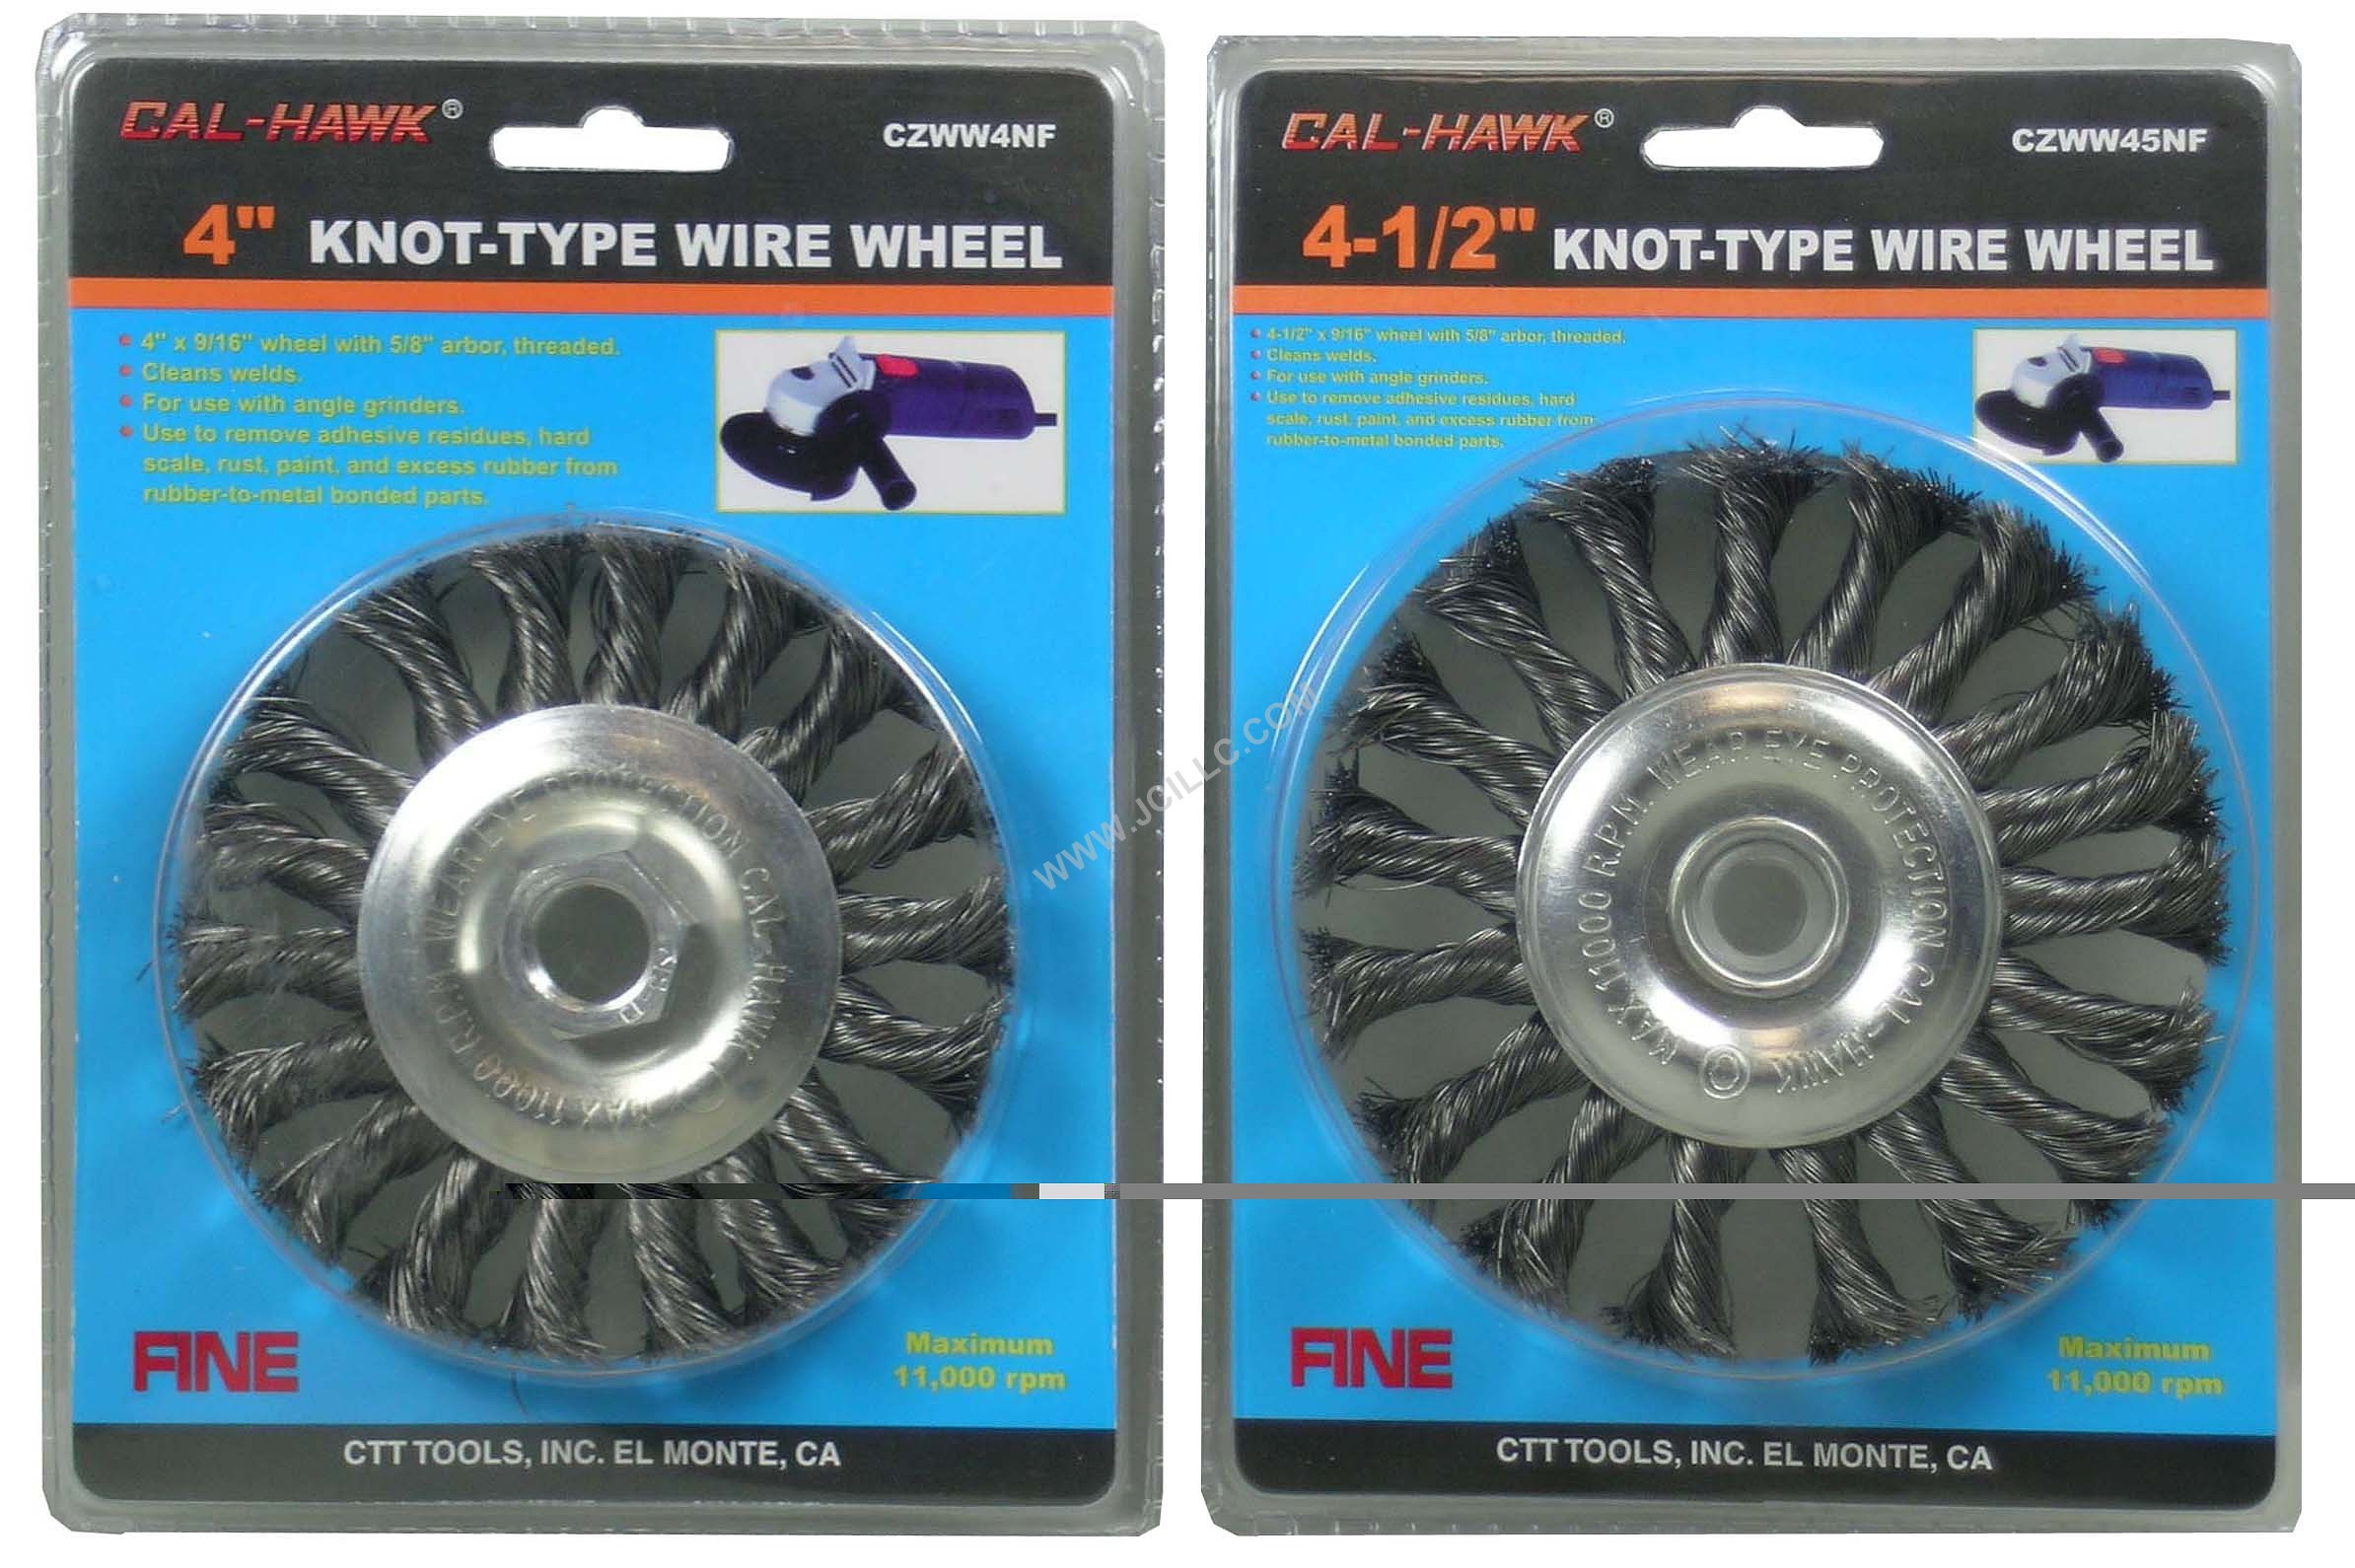 4.5 KNOT WIRE WHEEL, Tools Cutting Tools Wire Wheels , wholesale ...